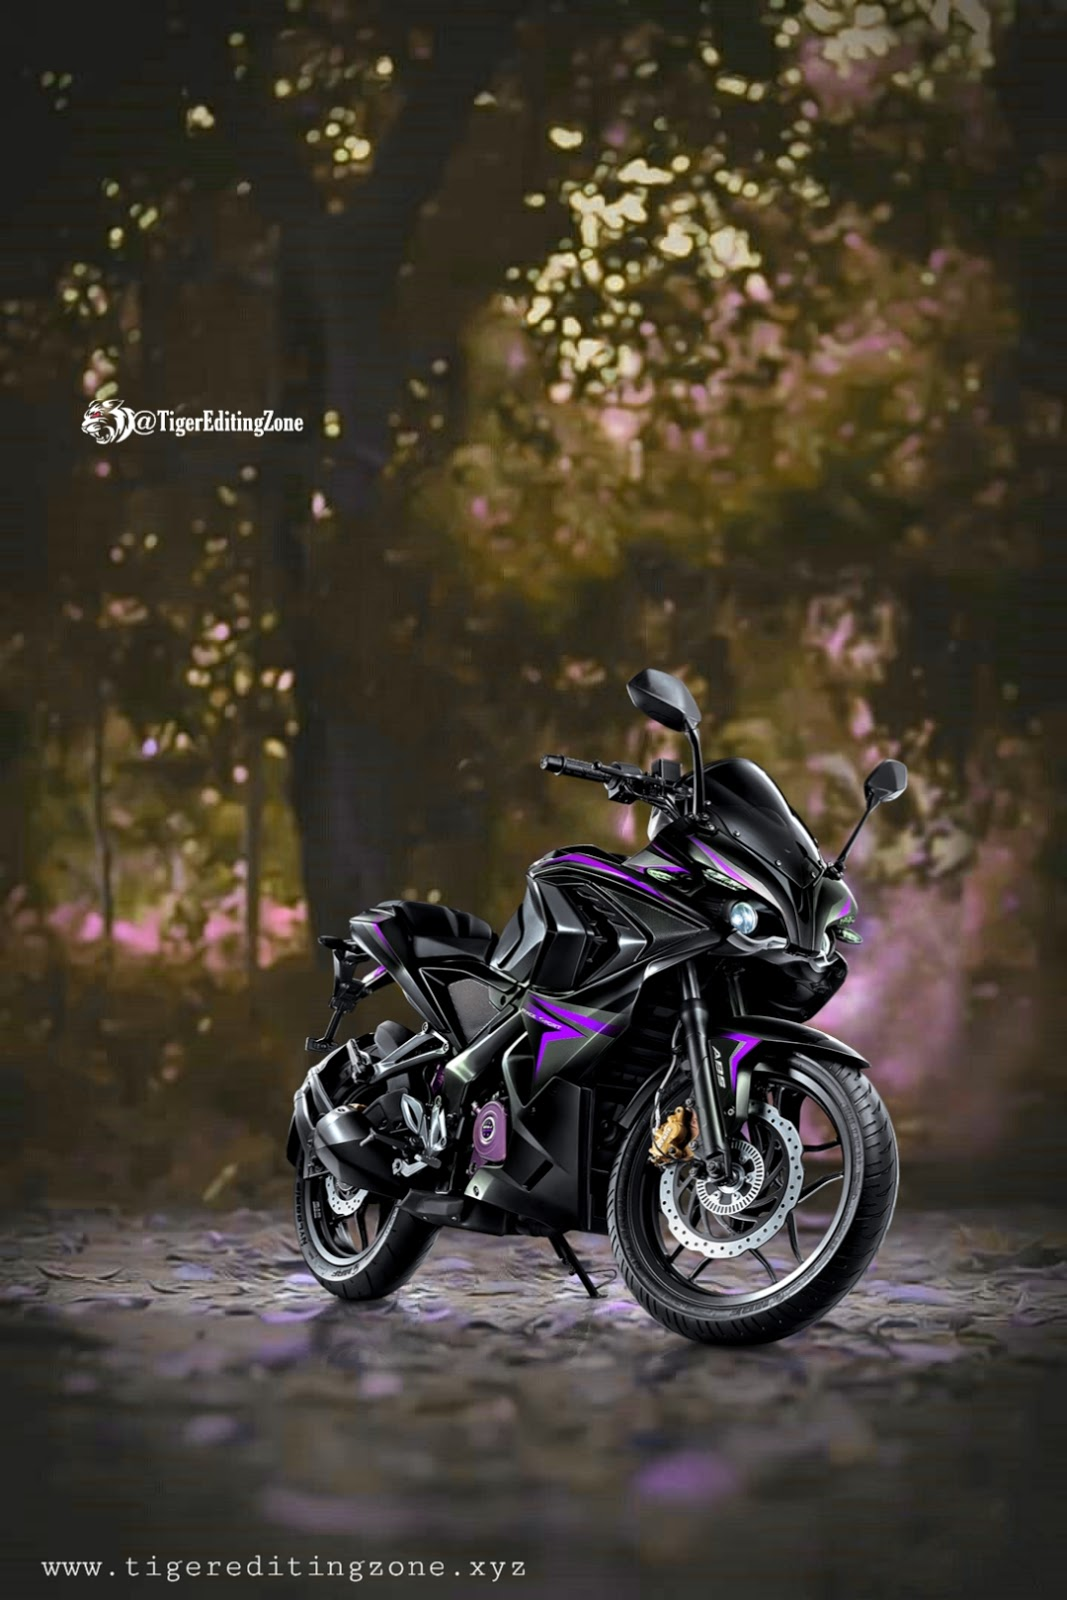 50+ Cb Bike Background Hd Images for Photoshop and PicsArt | Bike Background Hd Wallpaper 2020